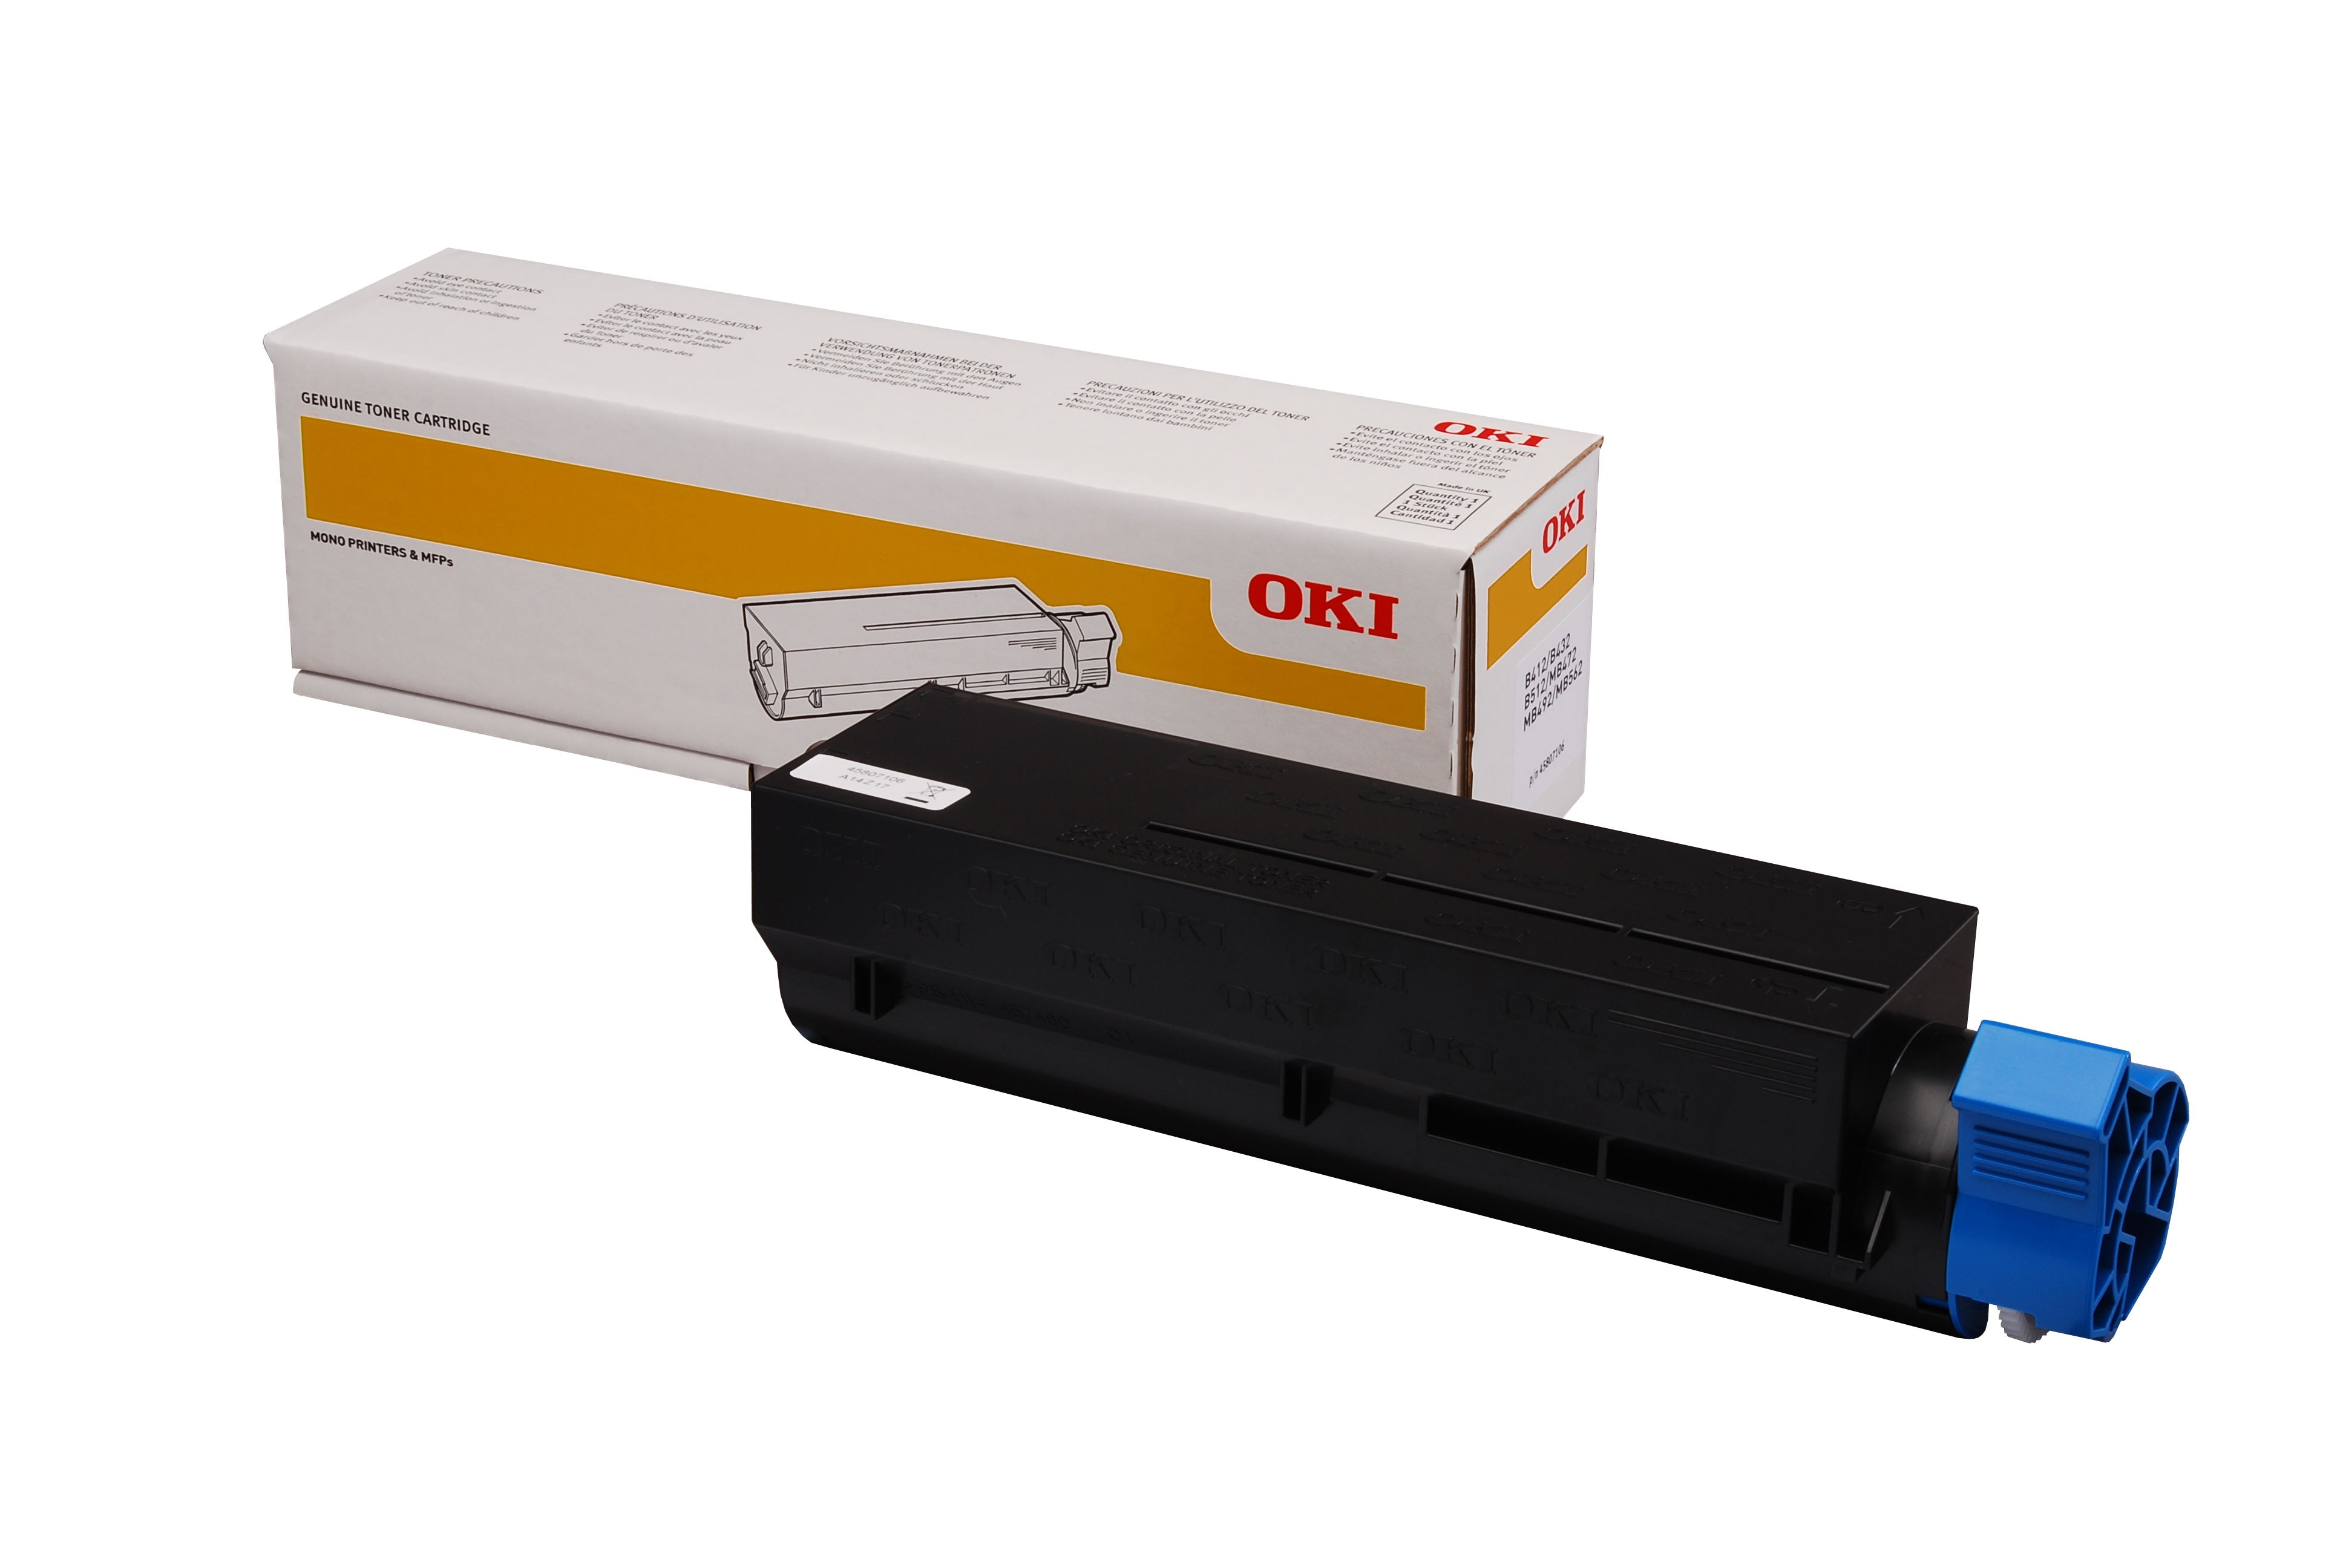 OKI MB492dn Black Toner (3,000 Pages) 45807103